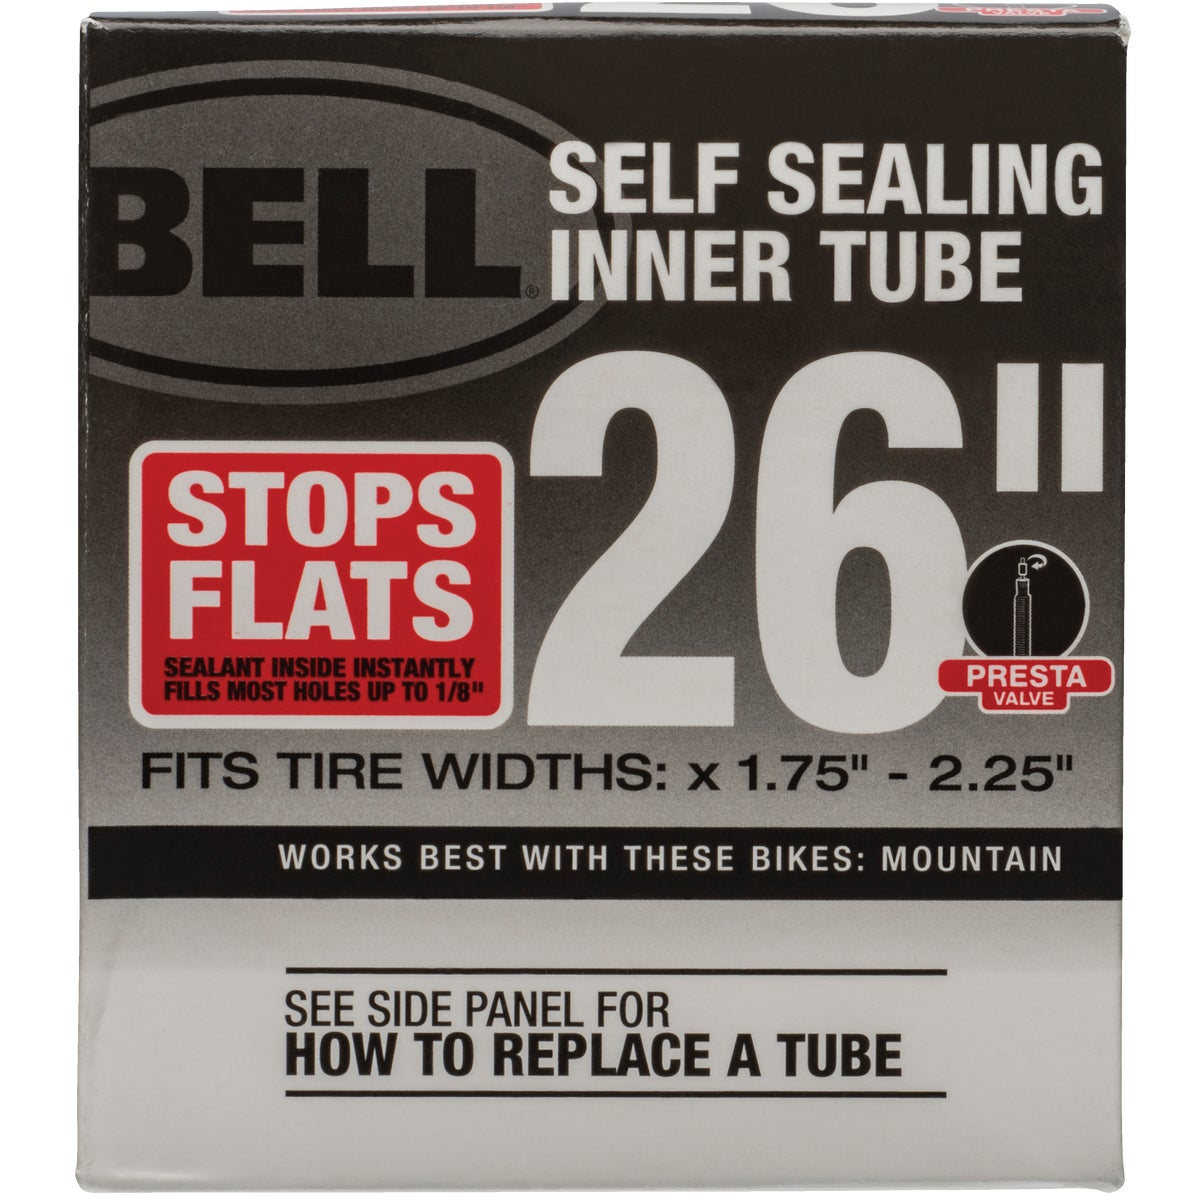 "26"" SELFSEAL INNER TUBE - 7015249 by Bell Sports"